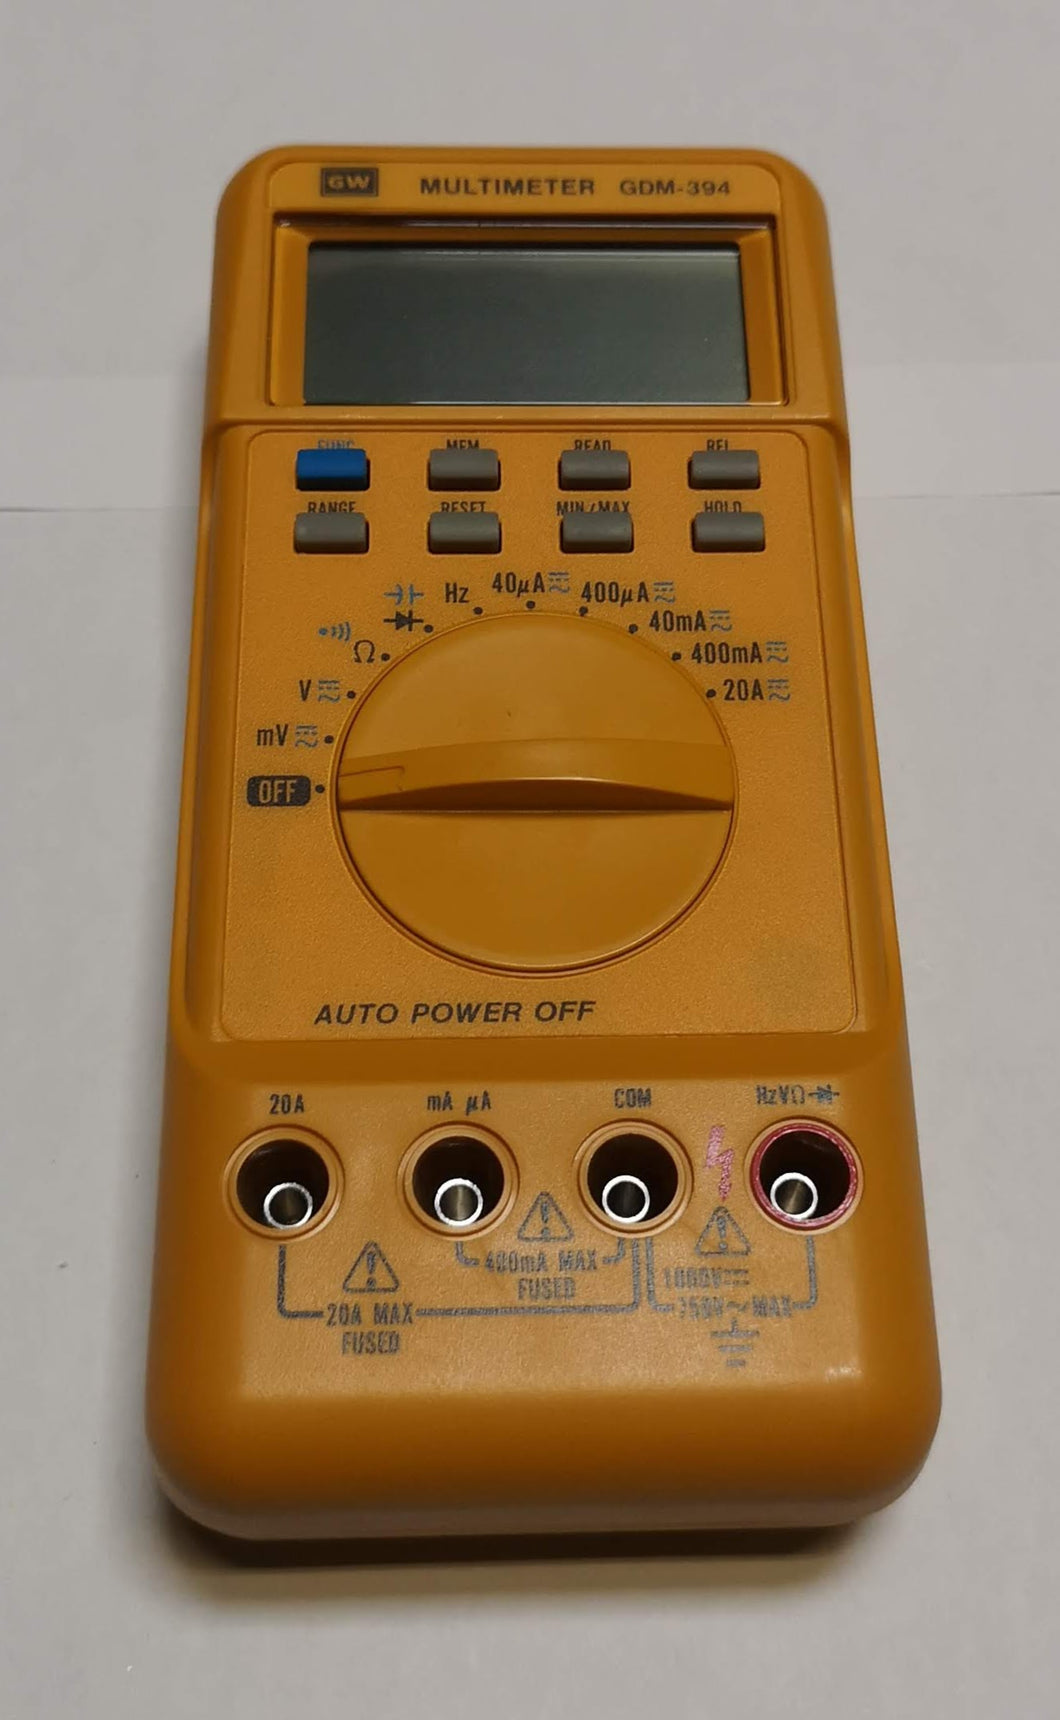 GW Instek - GDM 394 - Digital Multimeter